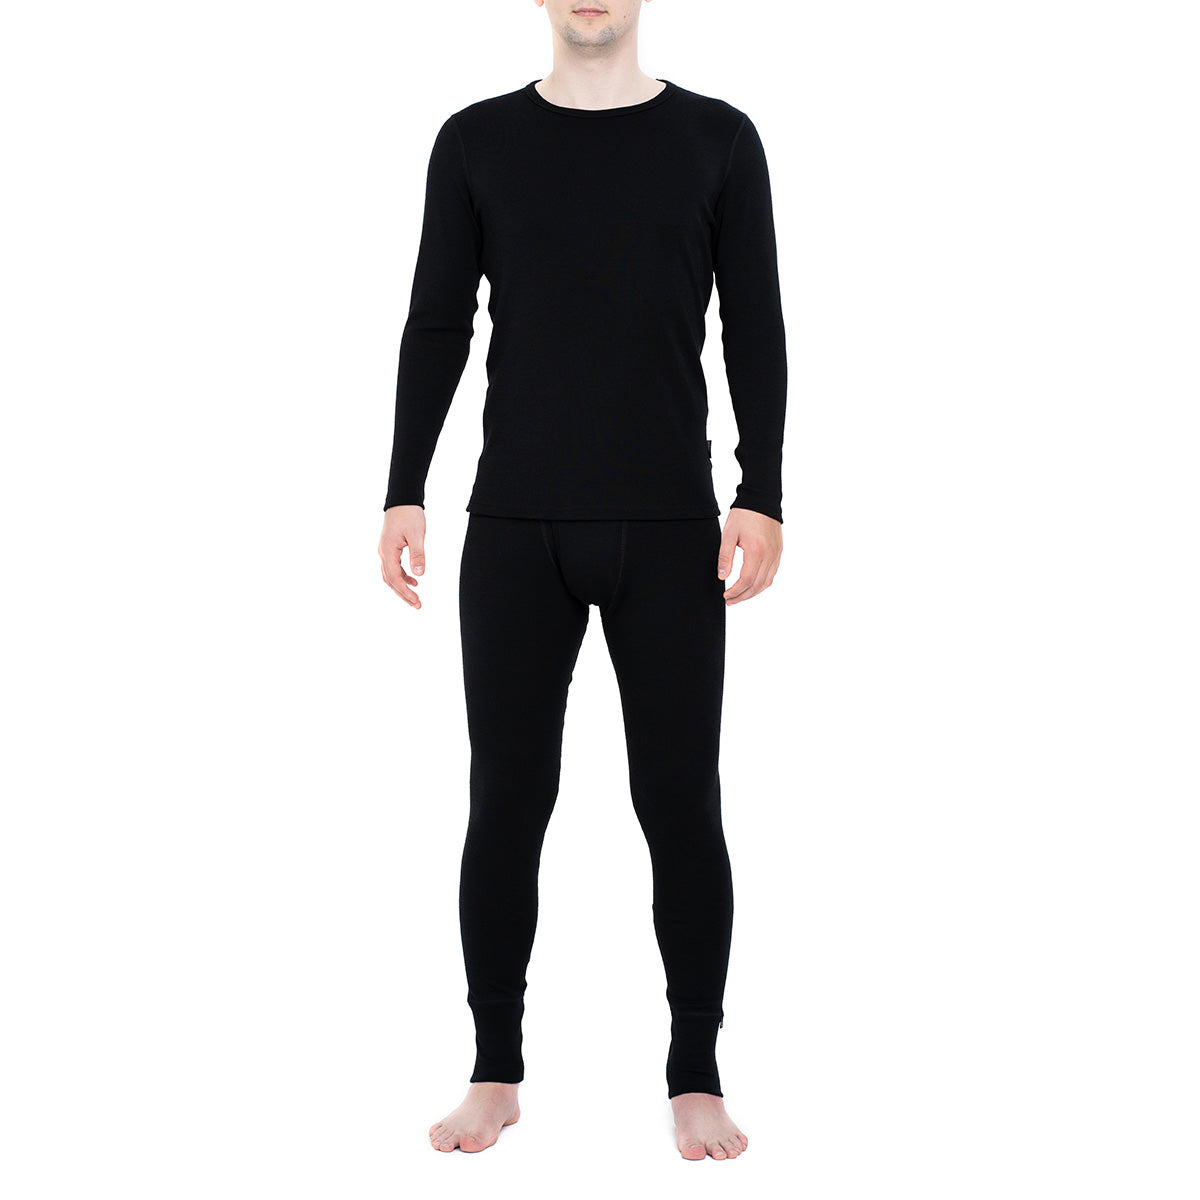 Men's Long Sleeve Set 250gsm Merino Wool Black